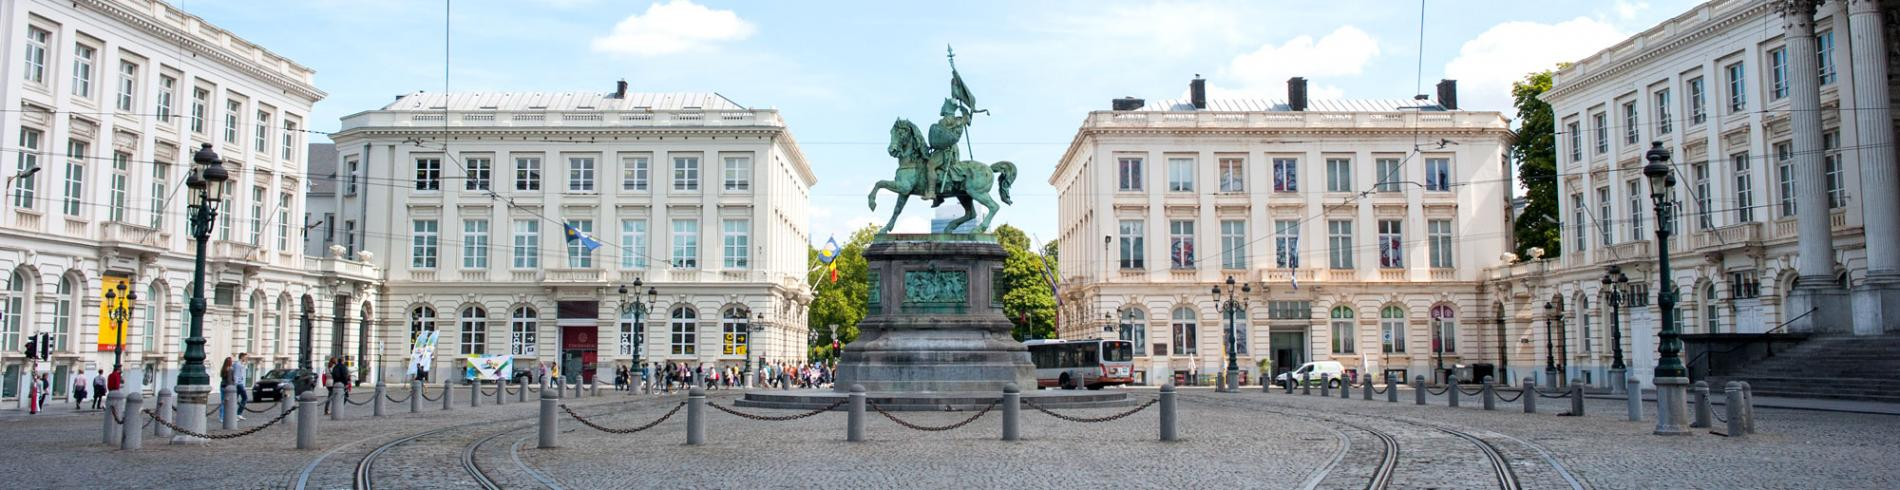 Large open square with a statue of a man on horseback in the centre